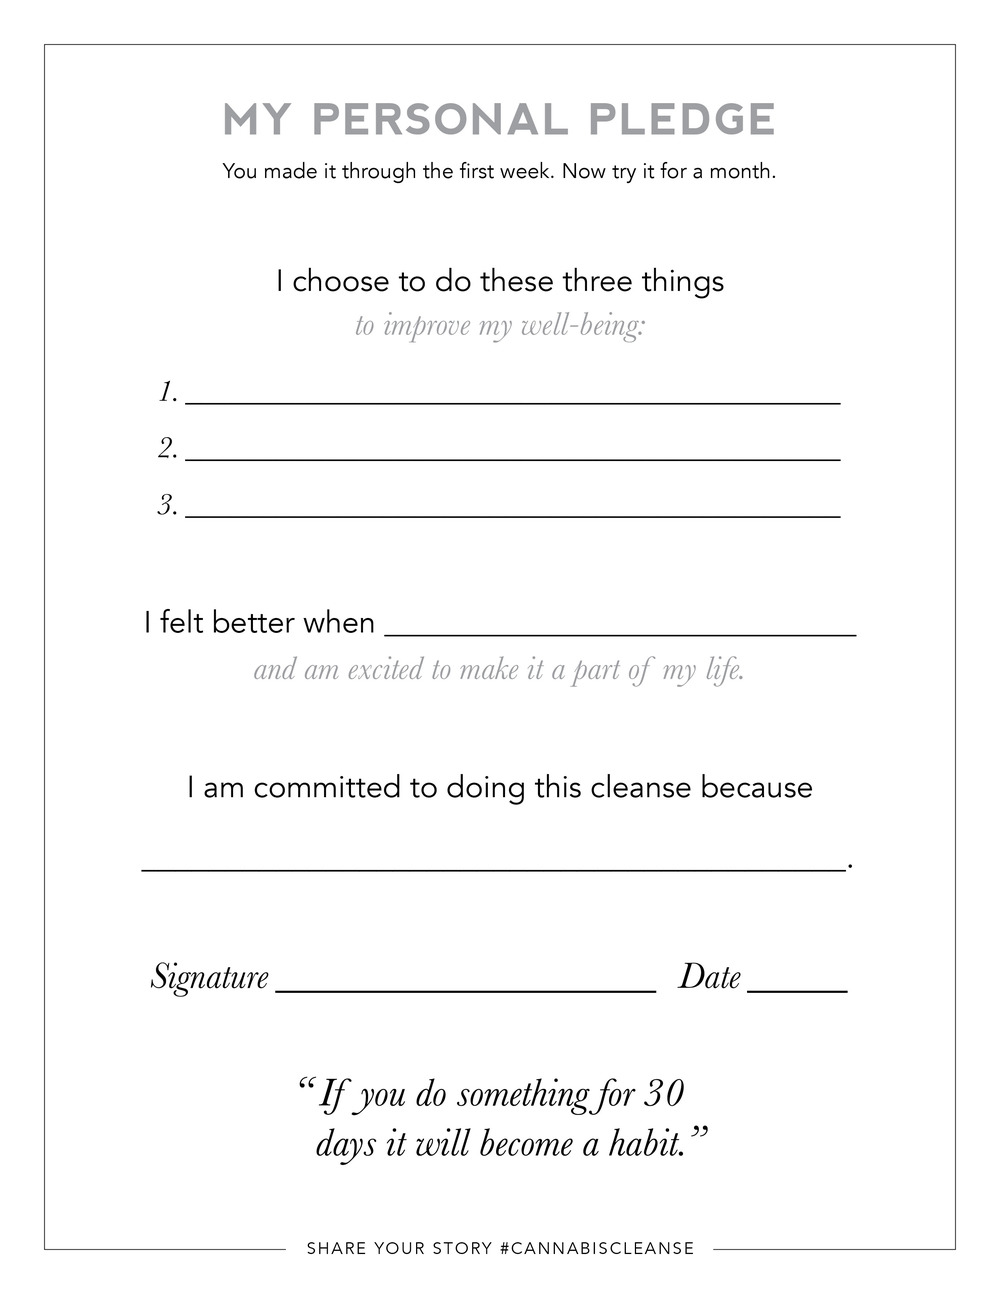 If you made it through the week, try it for a month! Fill in this pledge sheet and post it as a reminder of your own personal well-being goals and how you intend to get there.